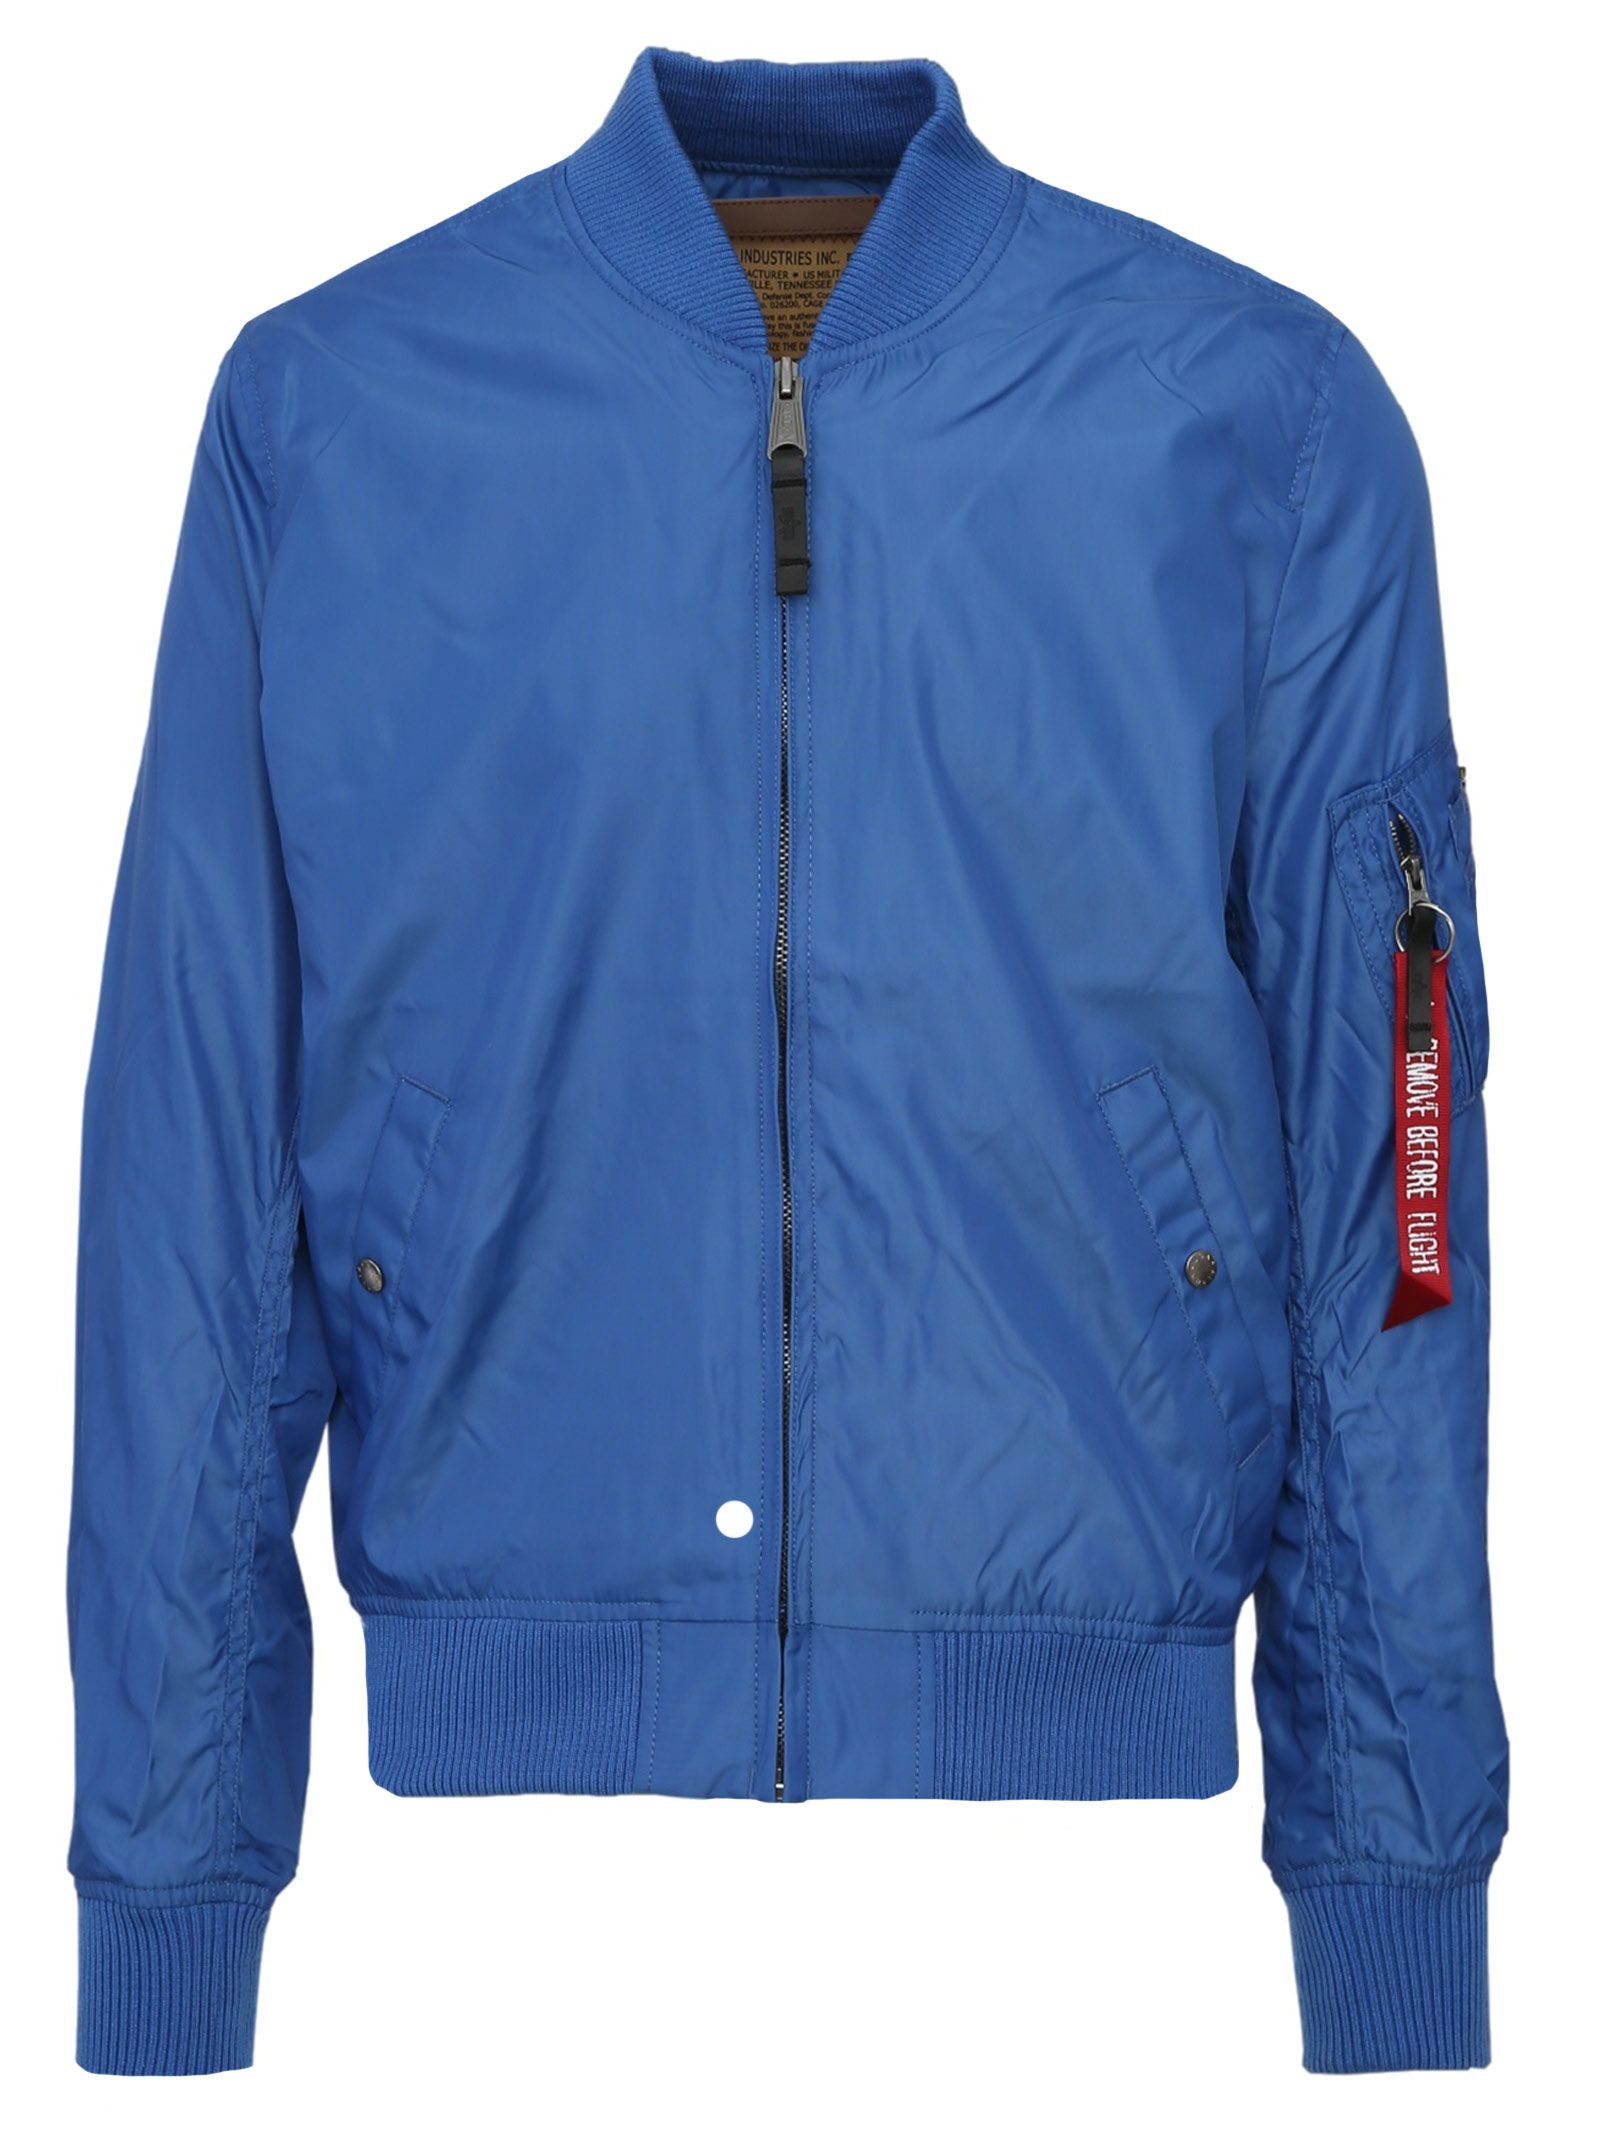 diversified in packaging 2019 authentic largest selection of 2019 Alpha Industries Jacket